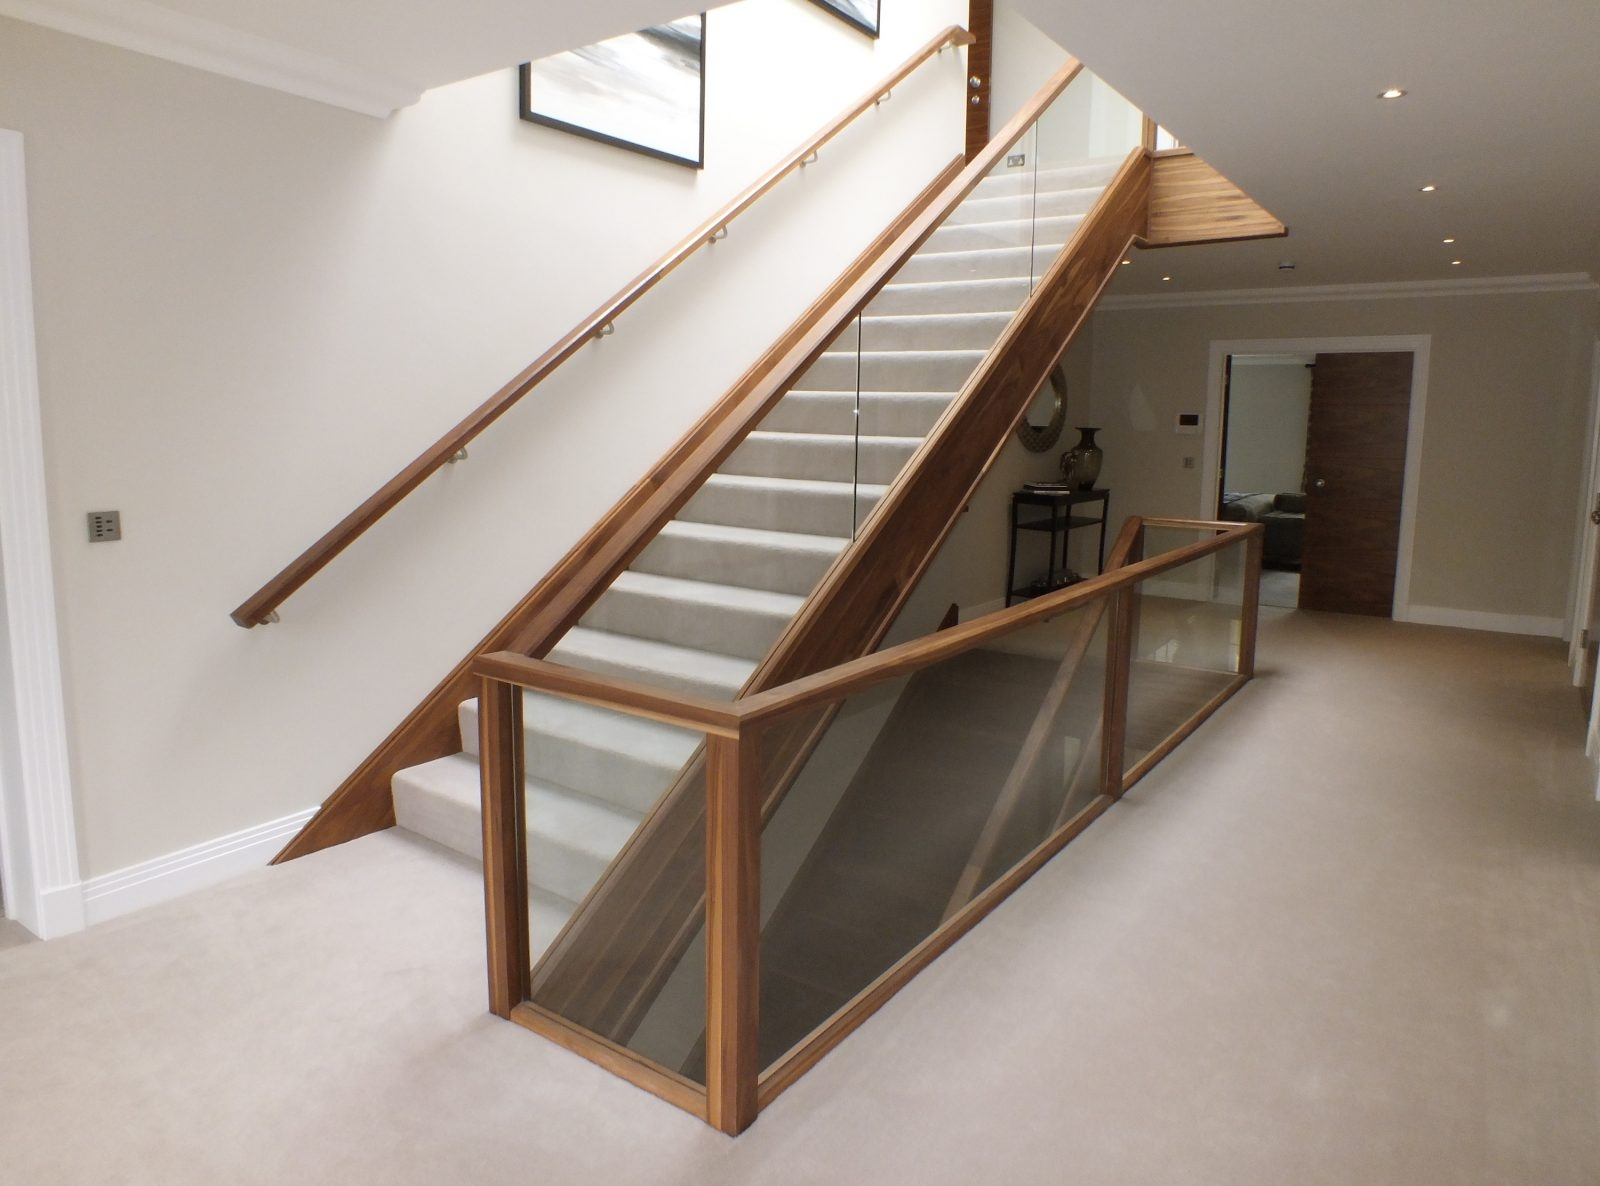 Glass Staircase Design Manufacture Edwards Hampson Ltd | Glass And Chrome Staircase | Contemporary | White Post | Single Spine | Lights | Stainless Steel